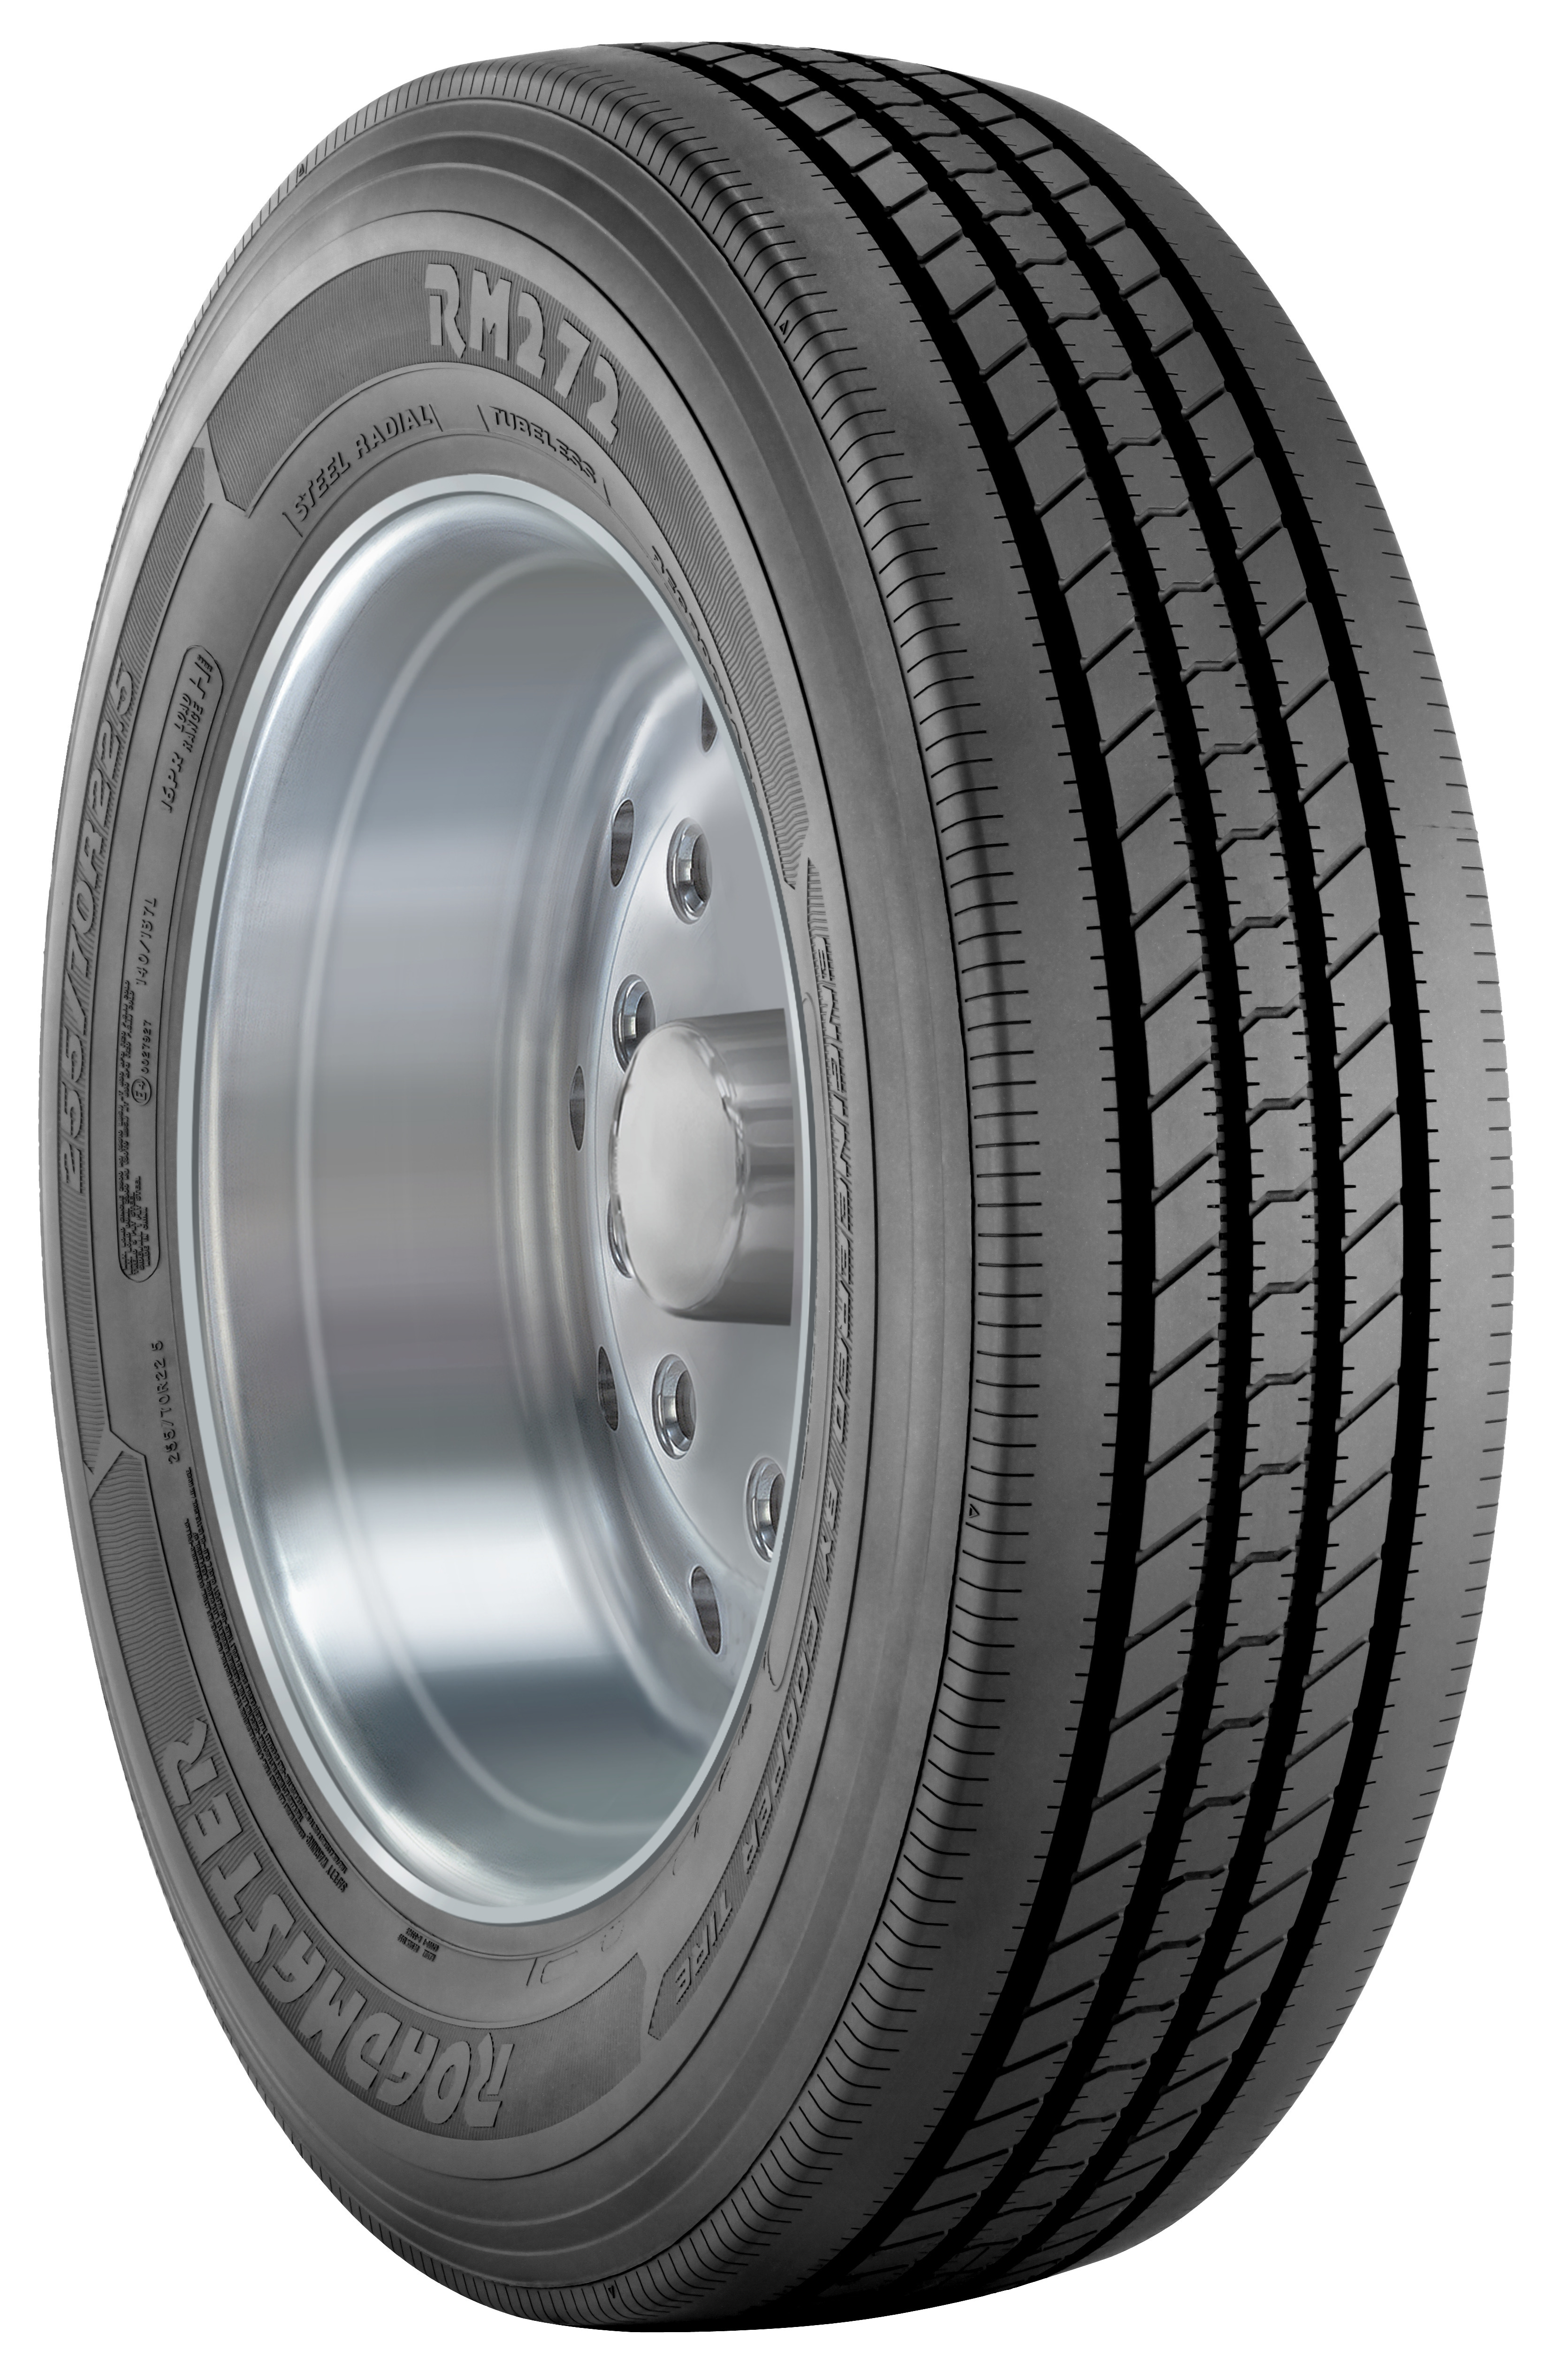 Cooper Tire Adds New Sizes to Roadmaster RM272™ Tire Line | Business ...